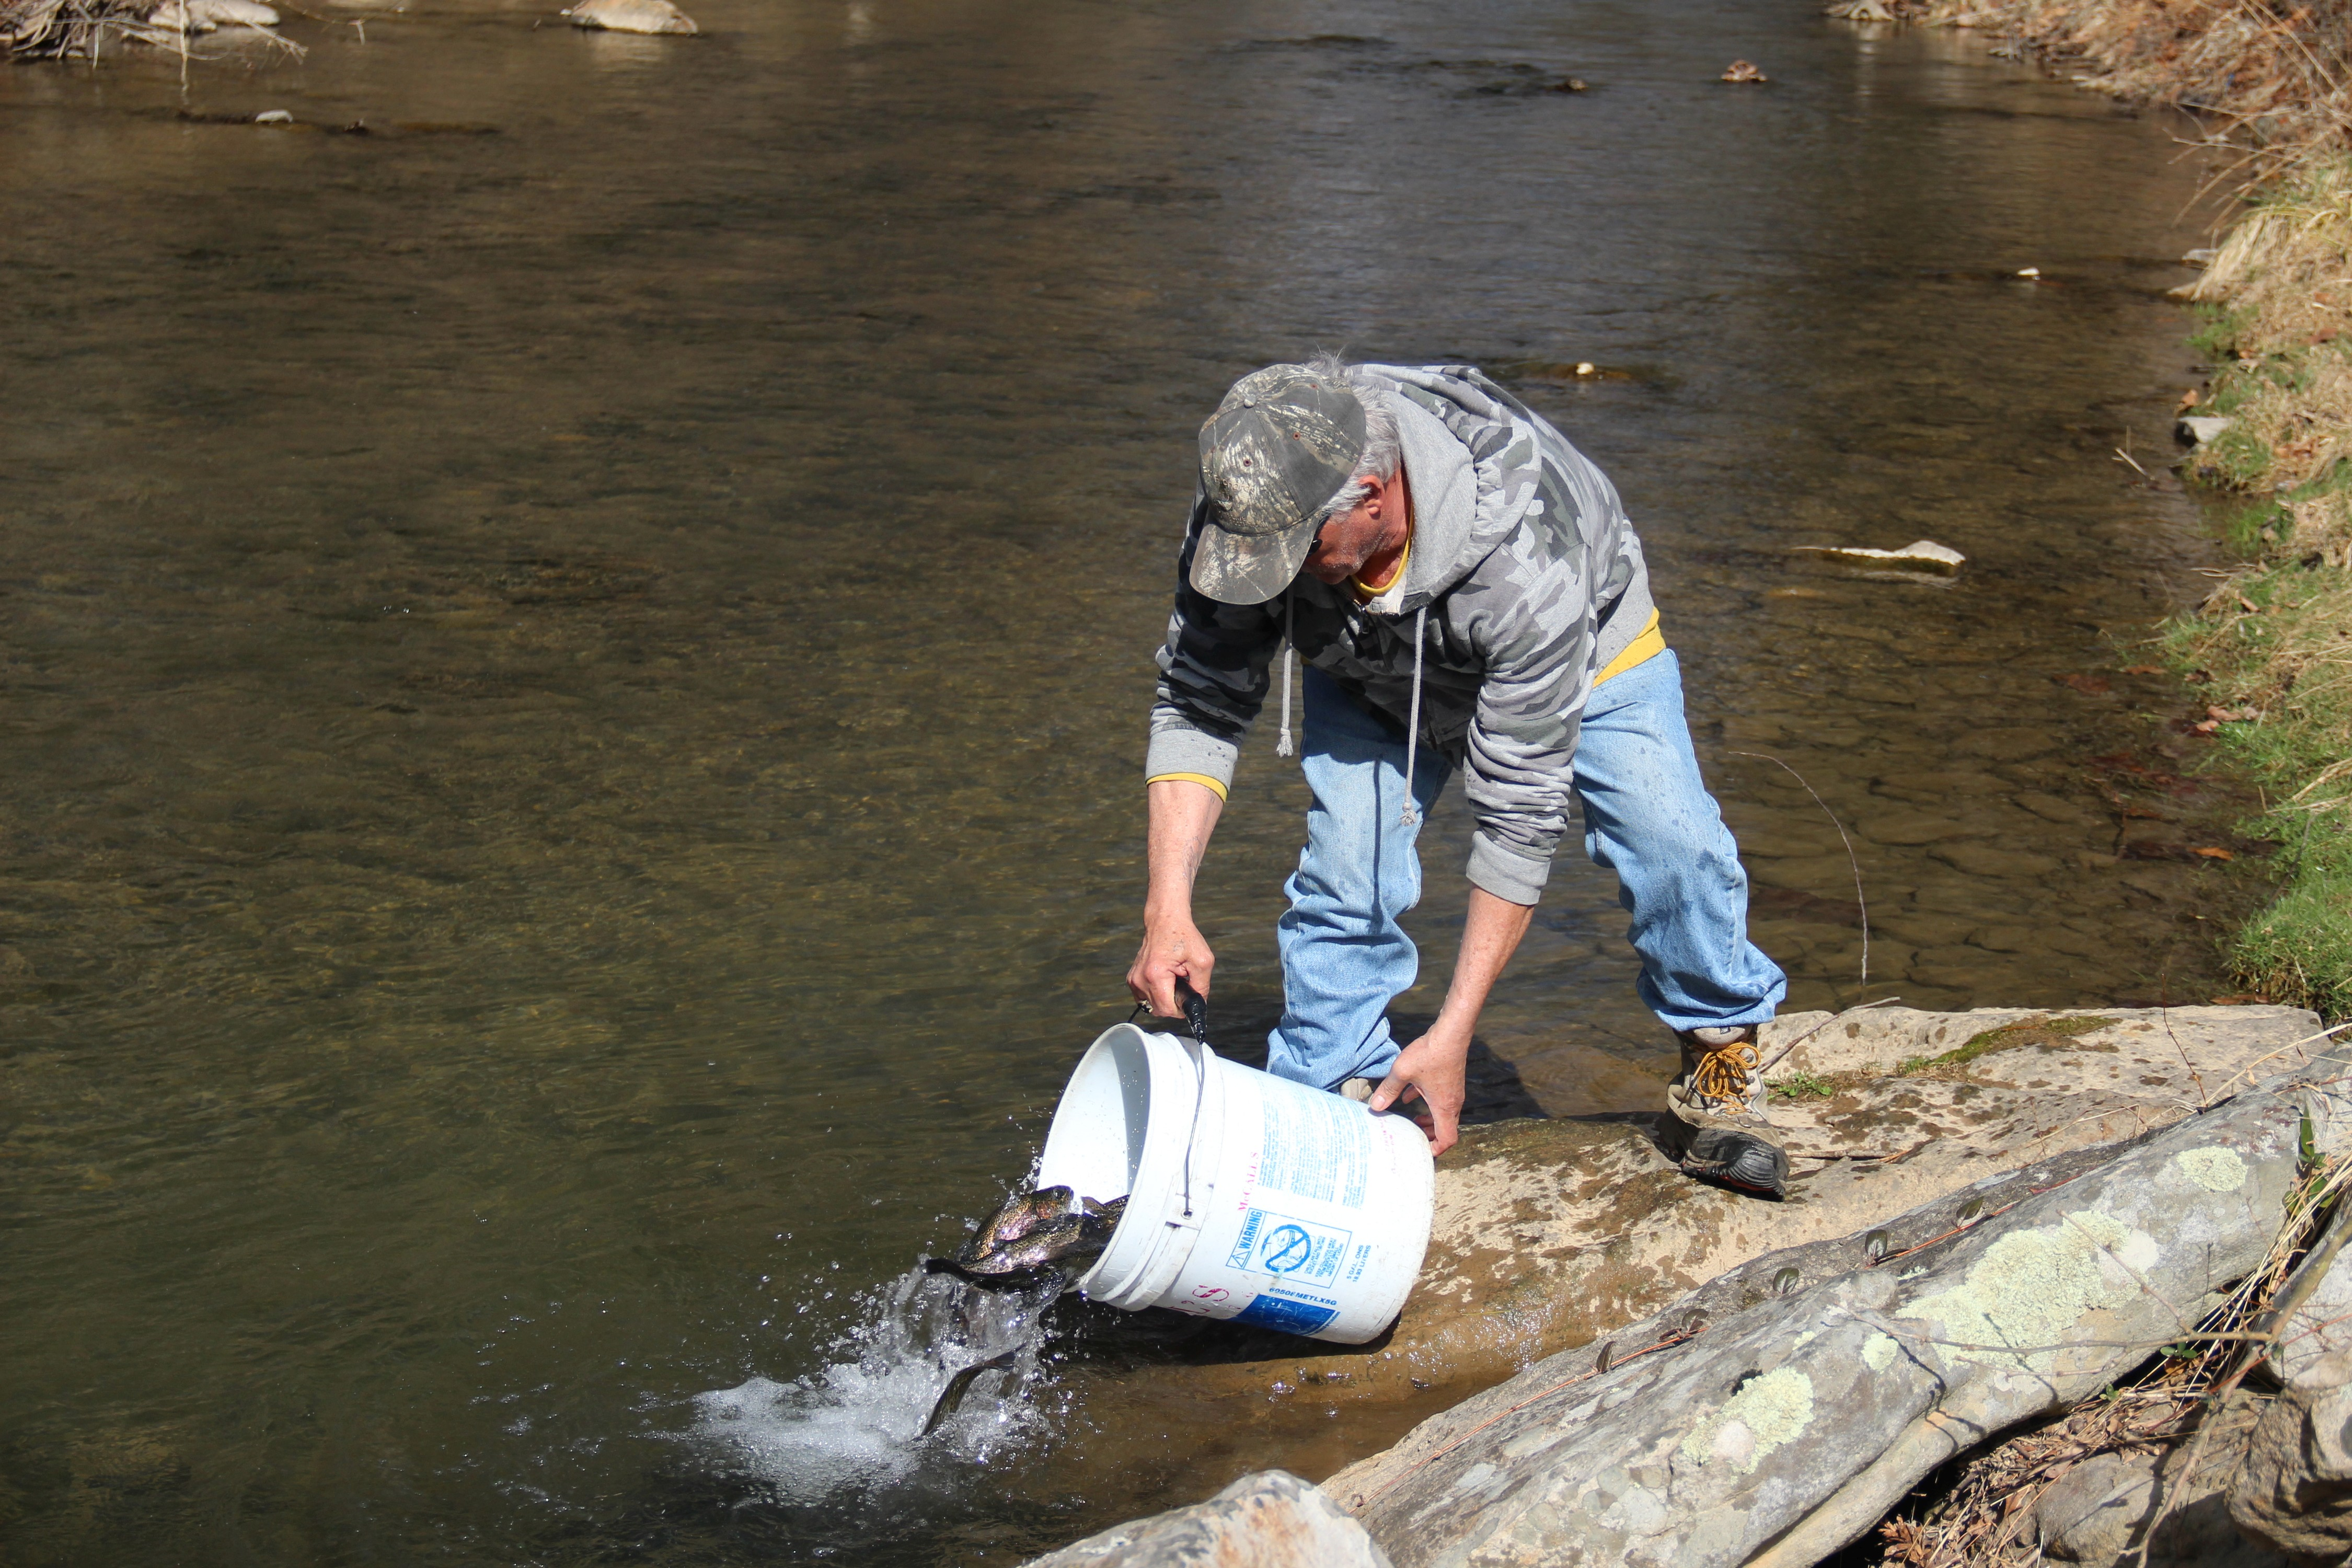 Volunteers are not participating in Pennsylvania's trout stocking this year, but trout season will open on schedule in NY and PA. (Photo courtesy of Pennsylvania Fish and Boat Commission.)